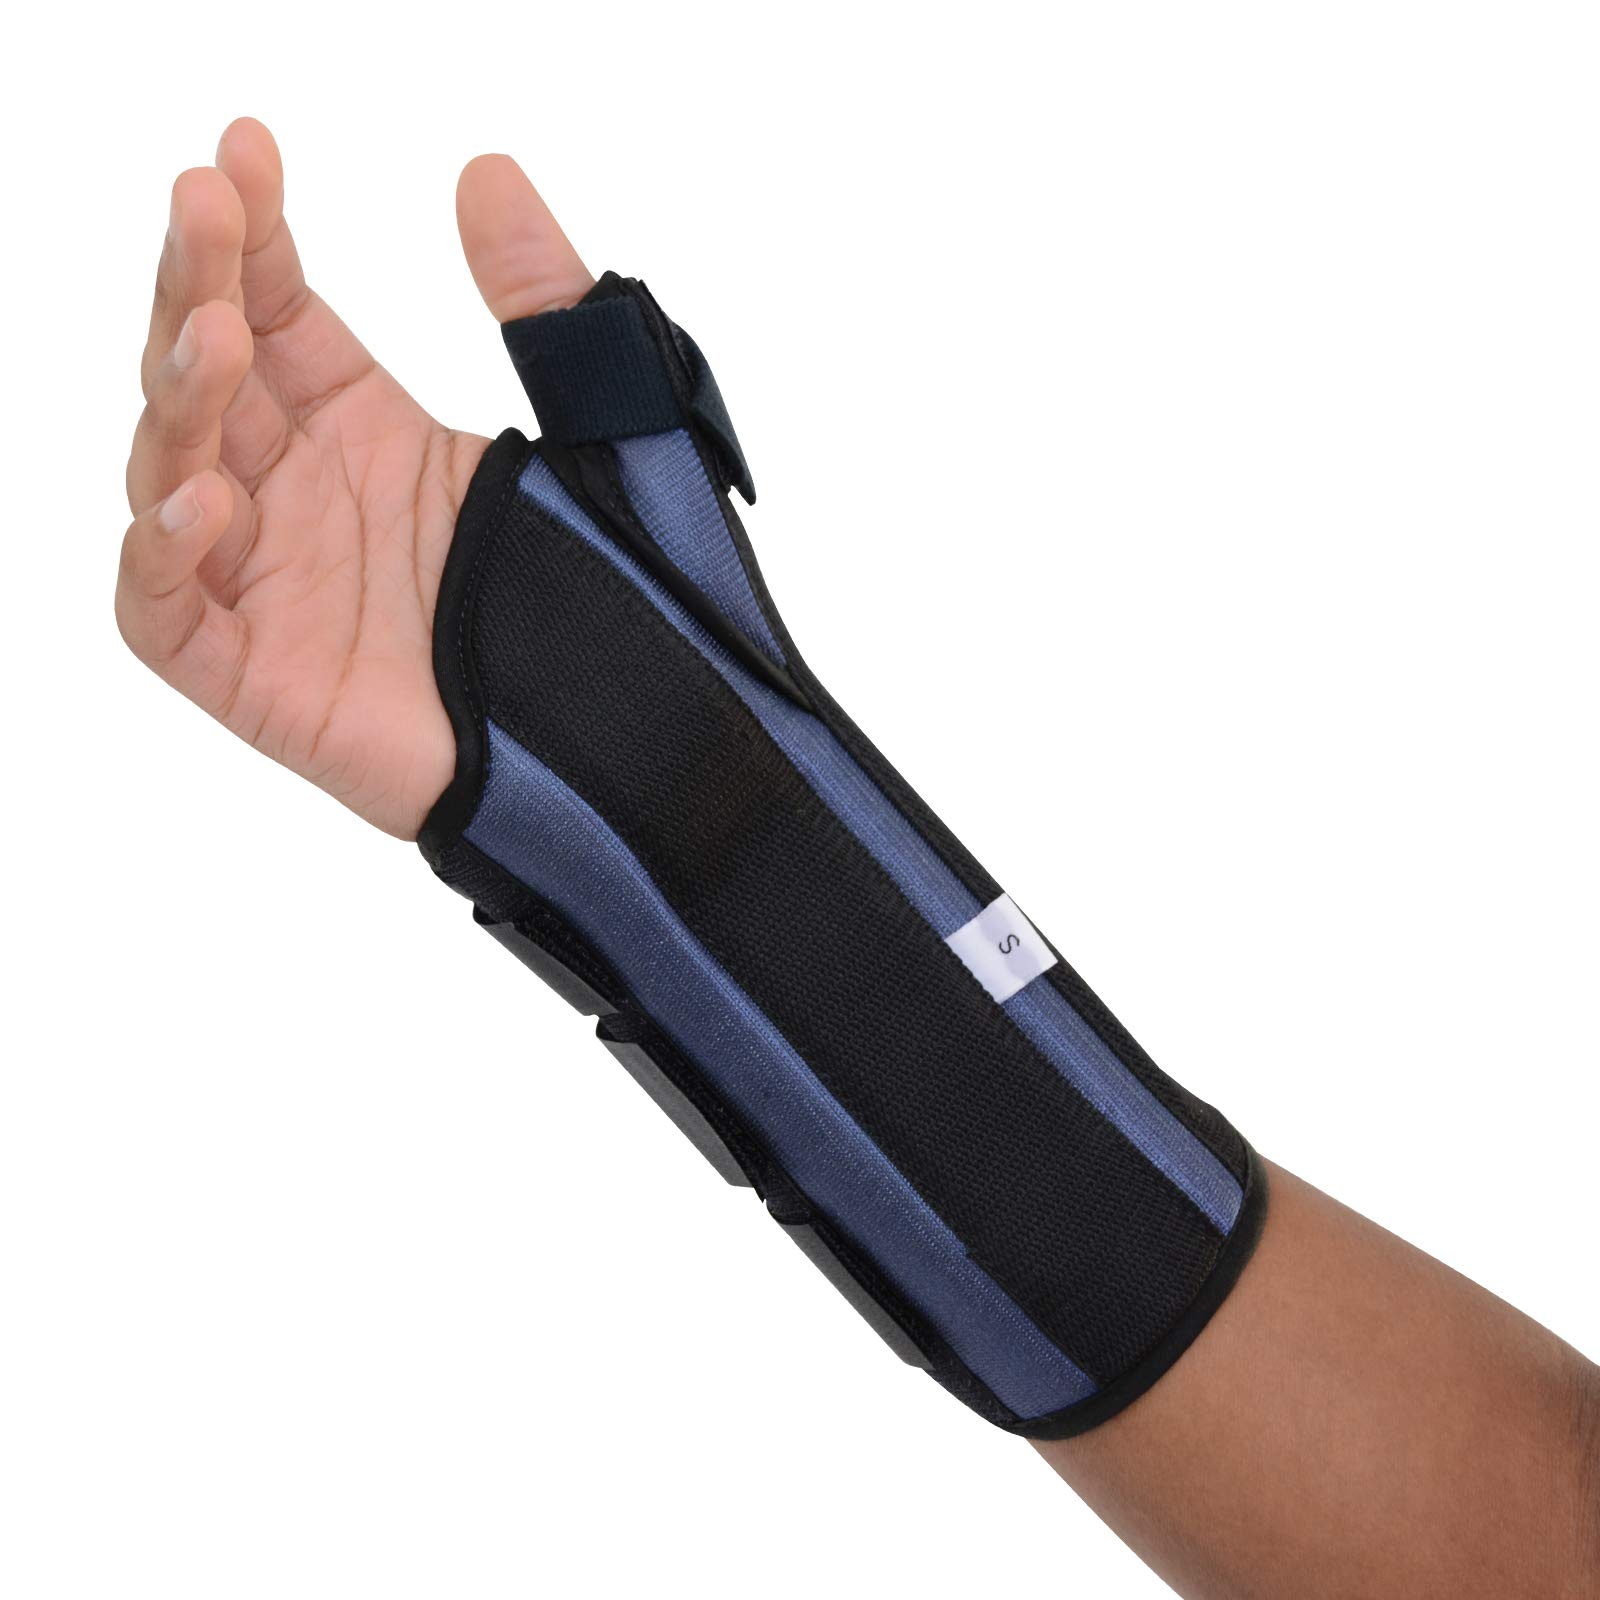 Sammons Preston Thumb Spica Wrist Brace, MC and CMC Joint Support and Stabilizer, Secure Brace and Splint for Thumb with Open Finger, Splint for Recovery, Therapy, Rehabilitation, Right, Medium by Sammons Preston (Image #6)